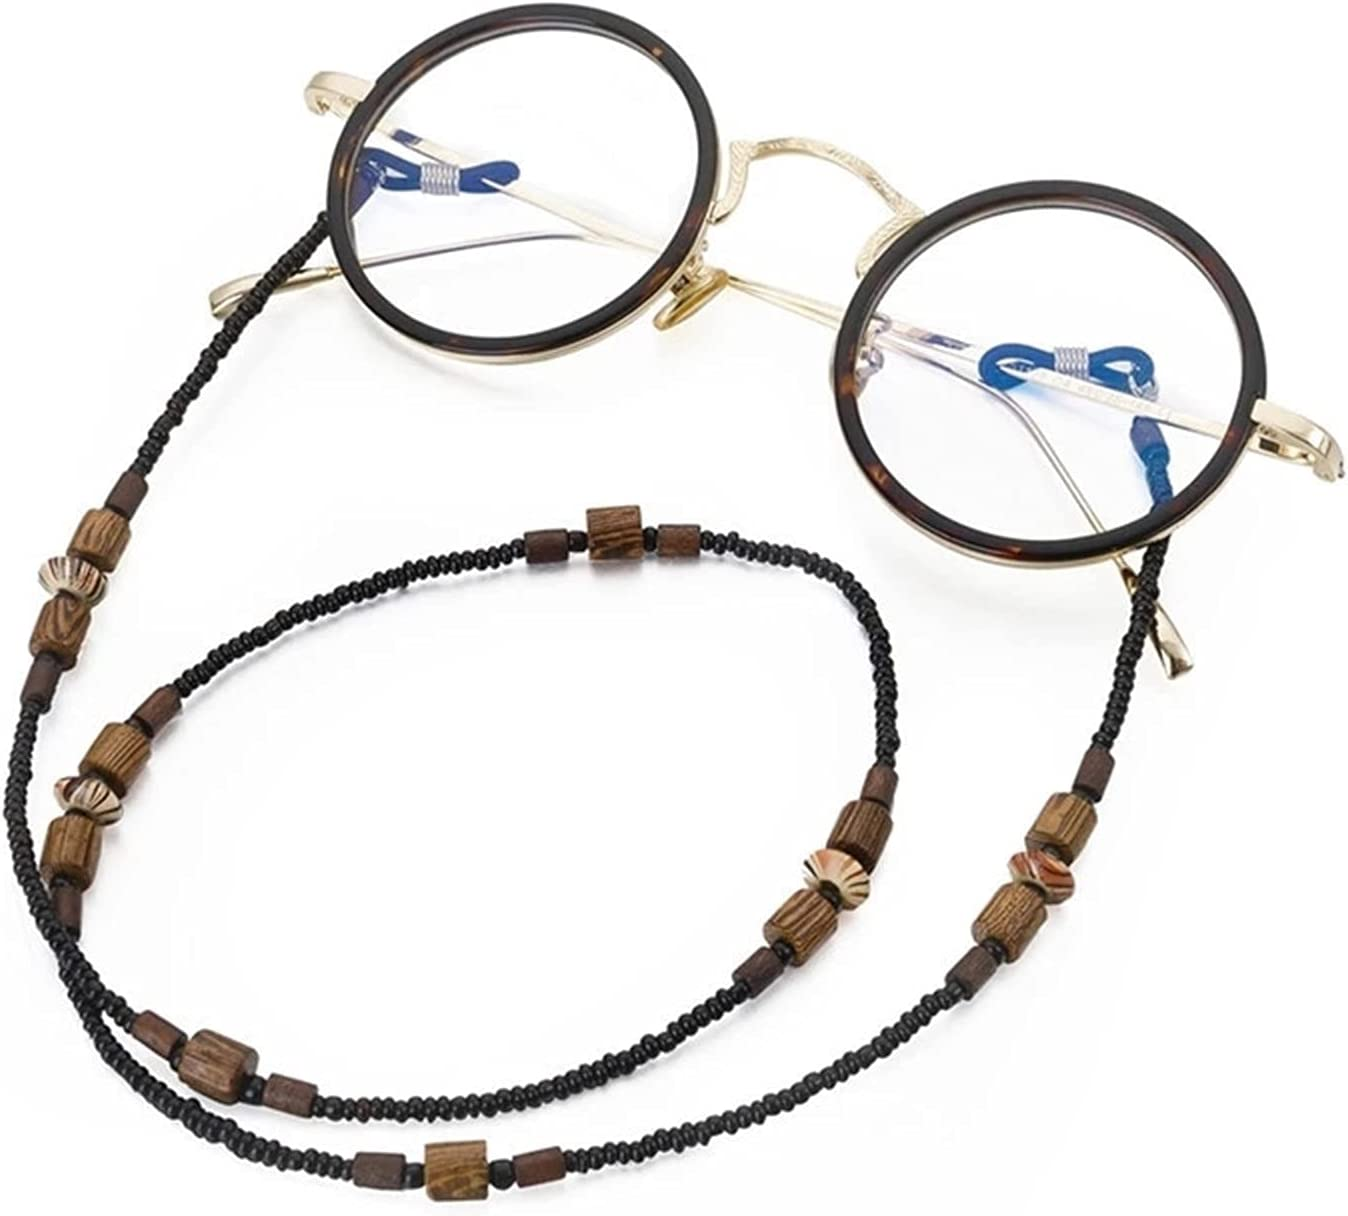 GWSD Chic Wooden Beads Beaded Glasses Chain No Fading Sunglasses Lanyard Eyeglass Cord Hanging Neck Strap (Color : Black)